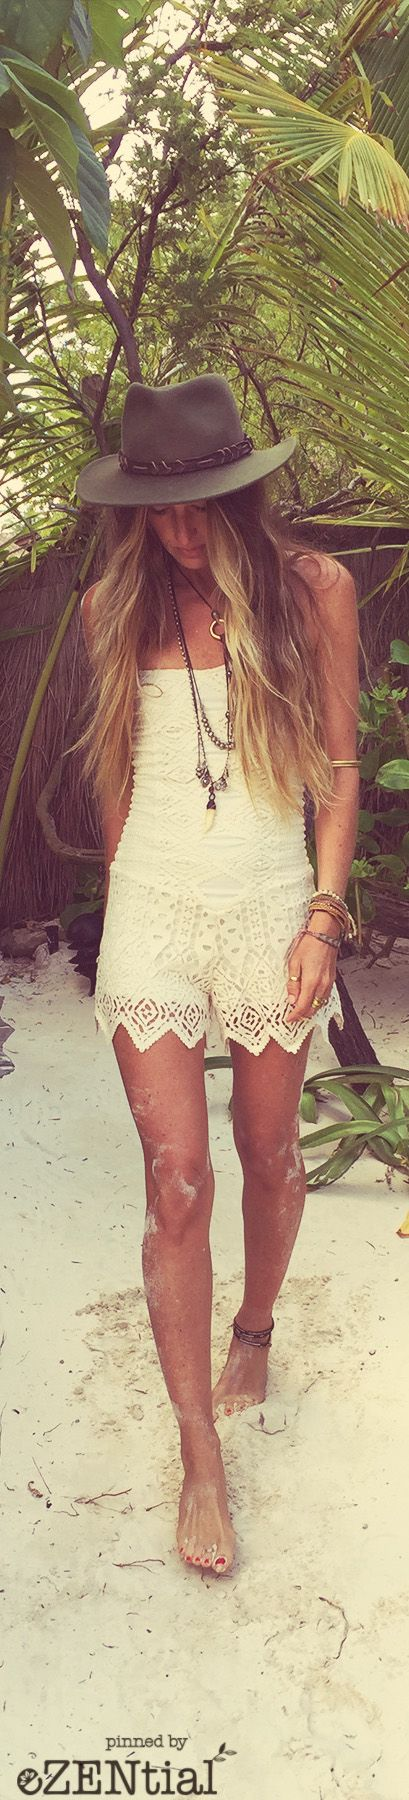 Sexy beachy boho chic onesie jumper with gypsy embellished lace fringe for a modern hippie edge. For the BEST Bohemian fashion trends for 2015 FOLLOW> https://www.pinterest.com/happygolicky/the-best-boho-chic-fashion-bohemian-jewelry-gypsy-/ <now.